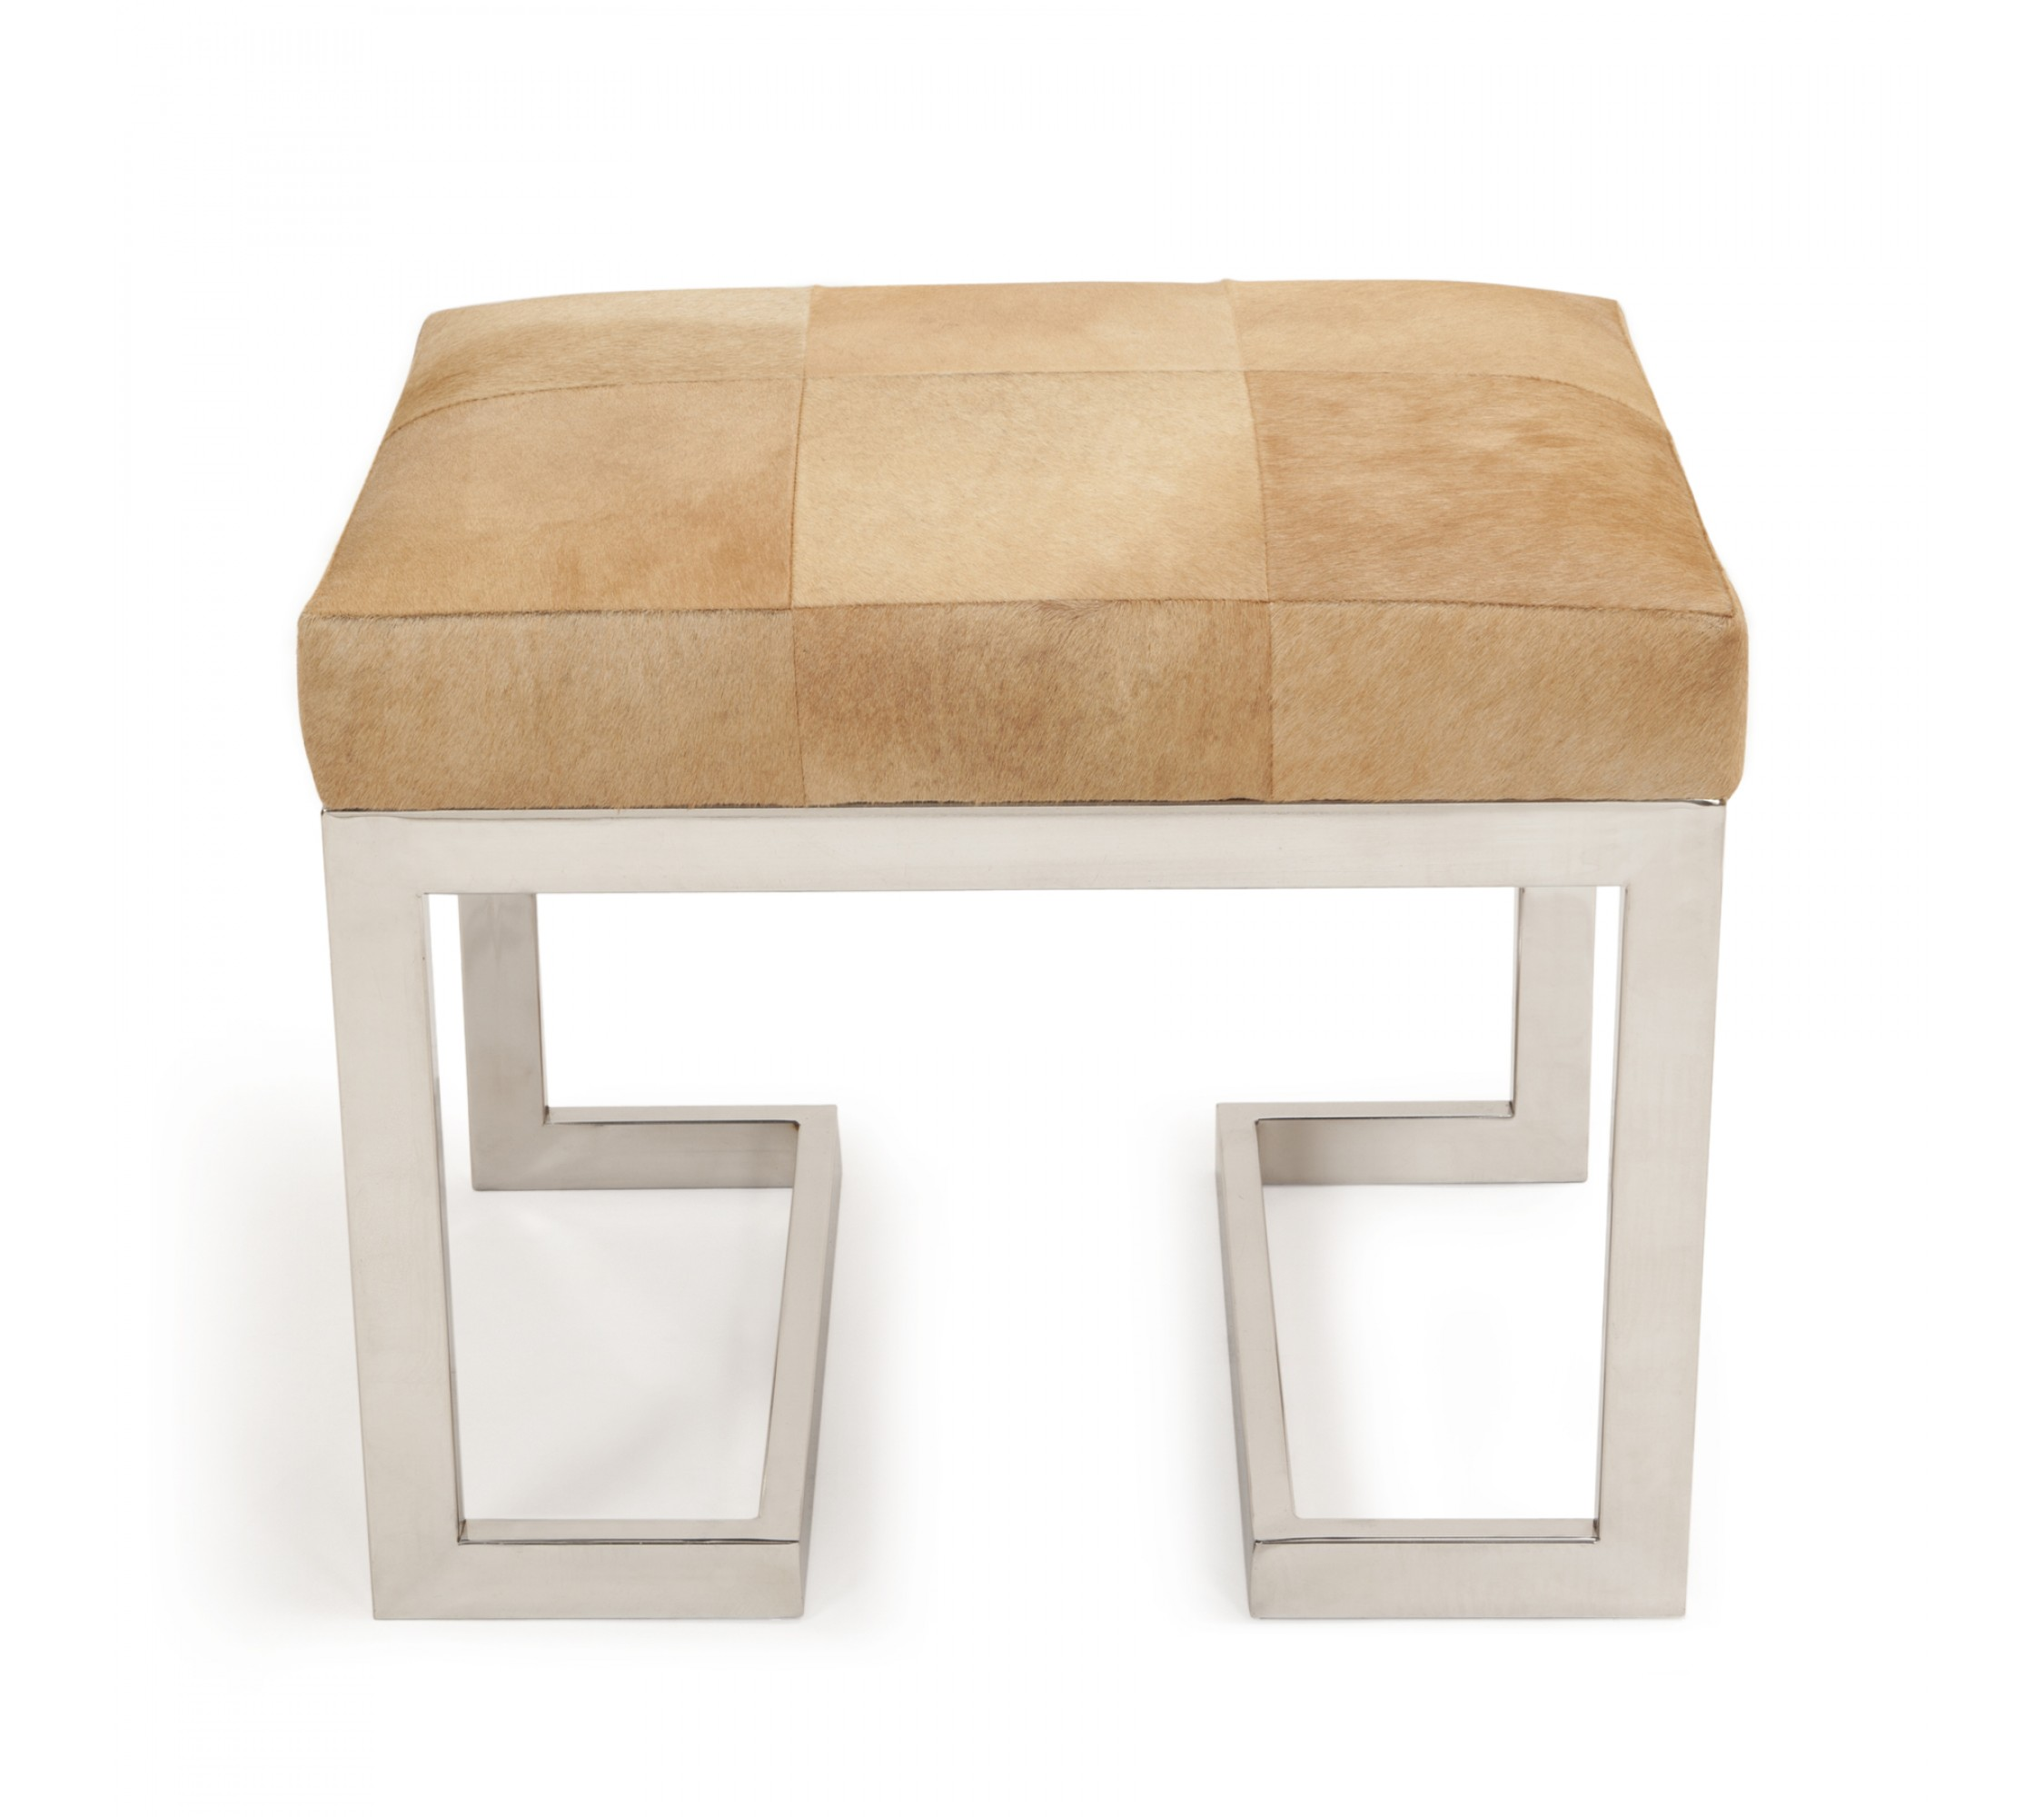 Hocker Kuhfell - Idaho Stool